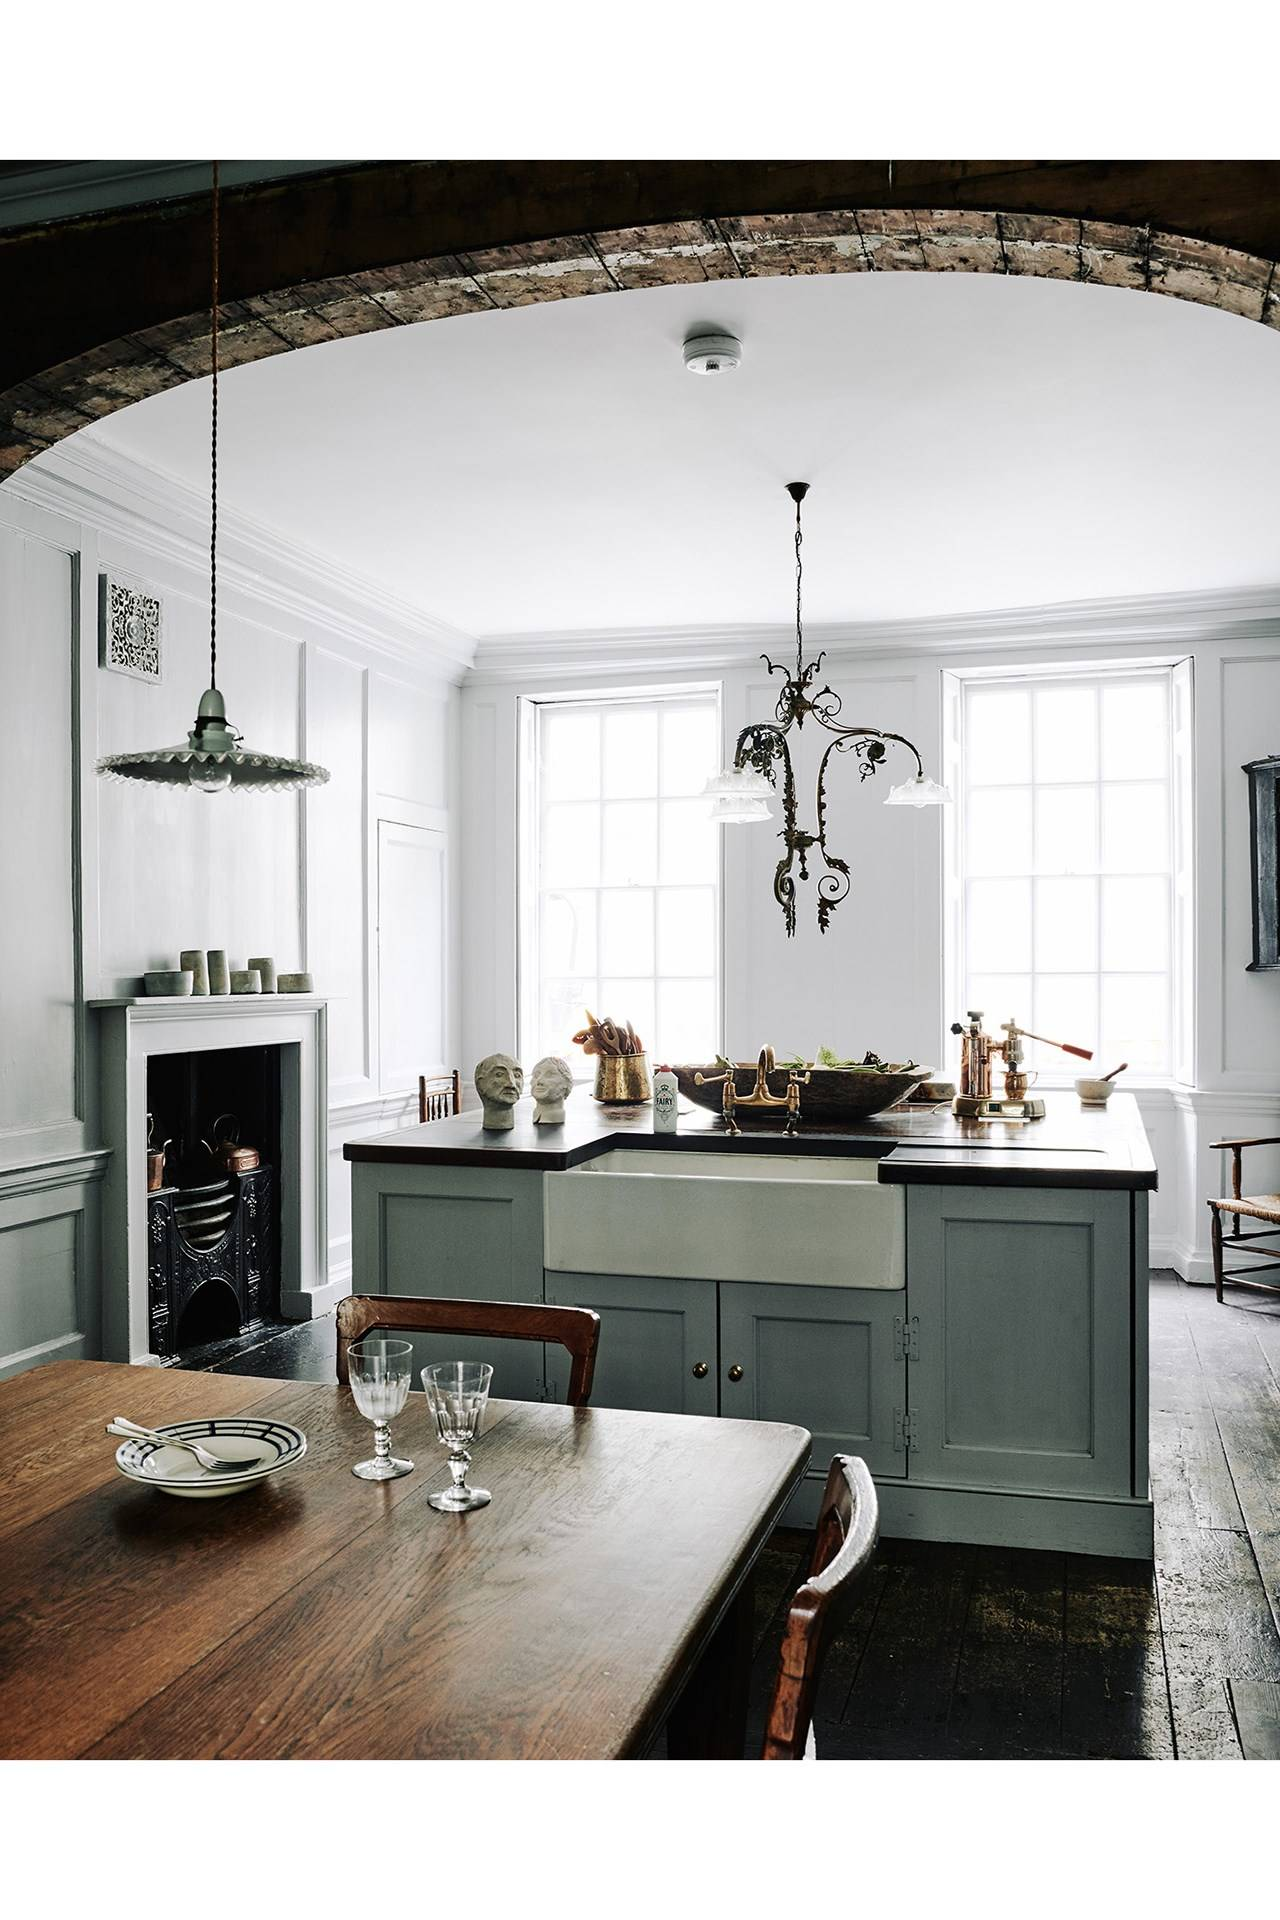 15 Kitchen Dining Room Ideas House, Dining Room To Kitchen Ideas